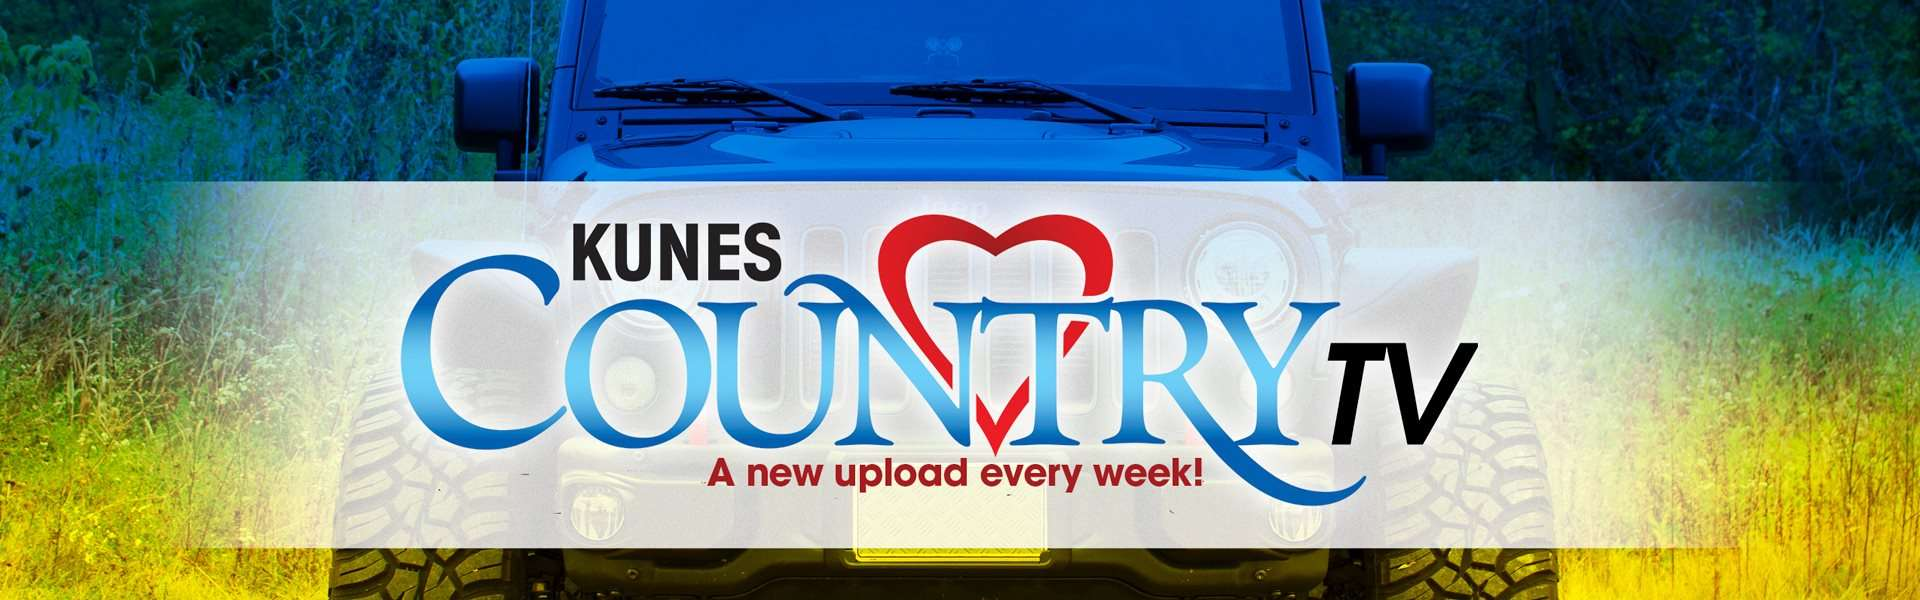 Kunes Country TV